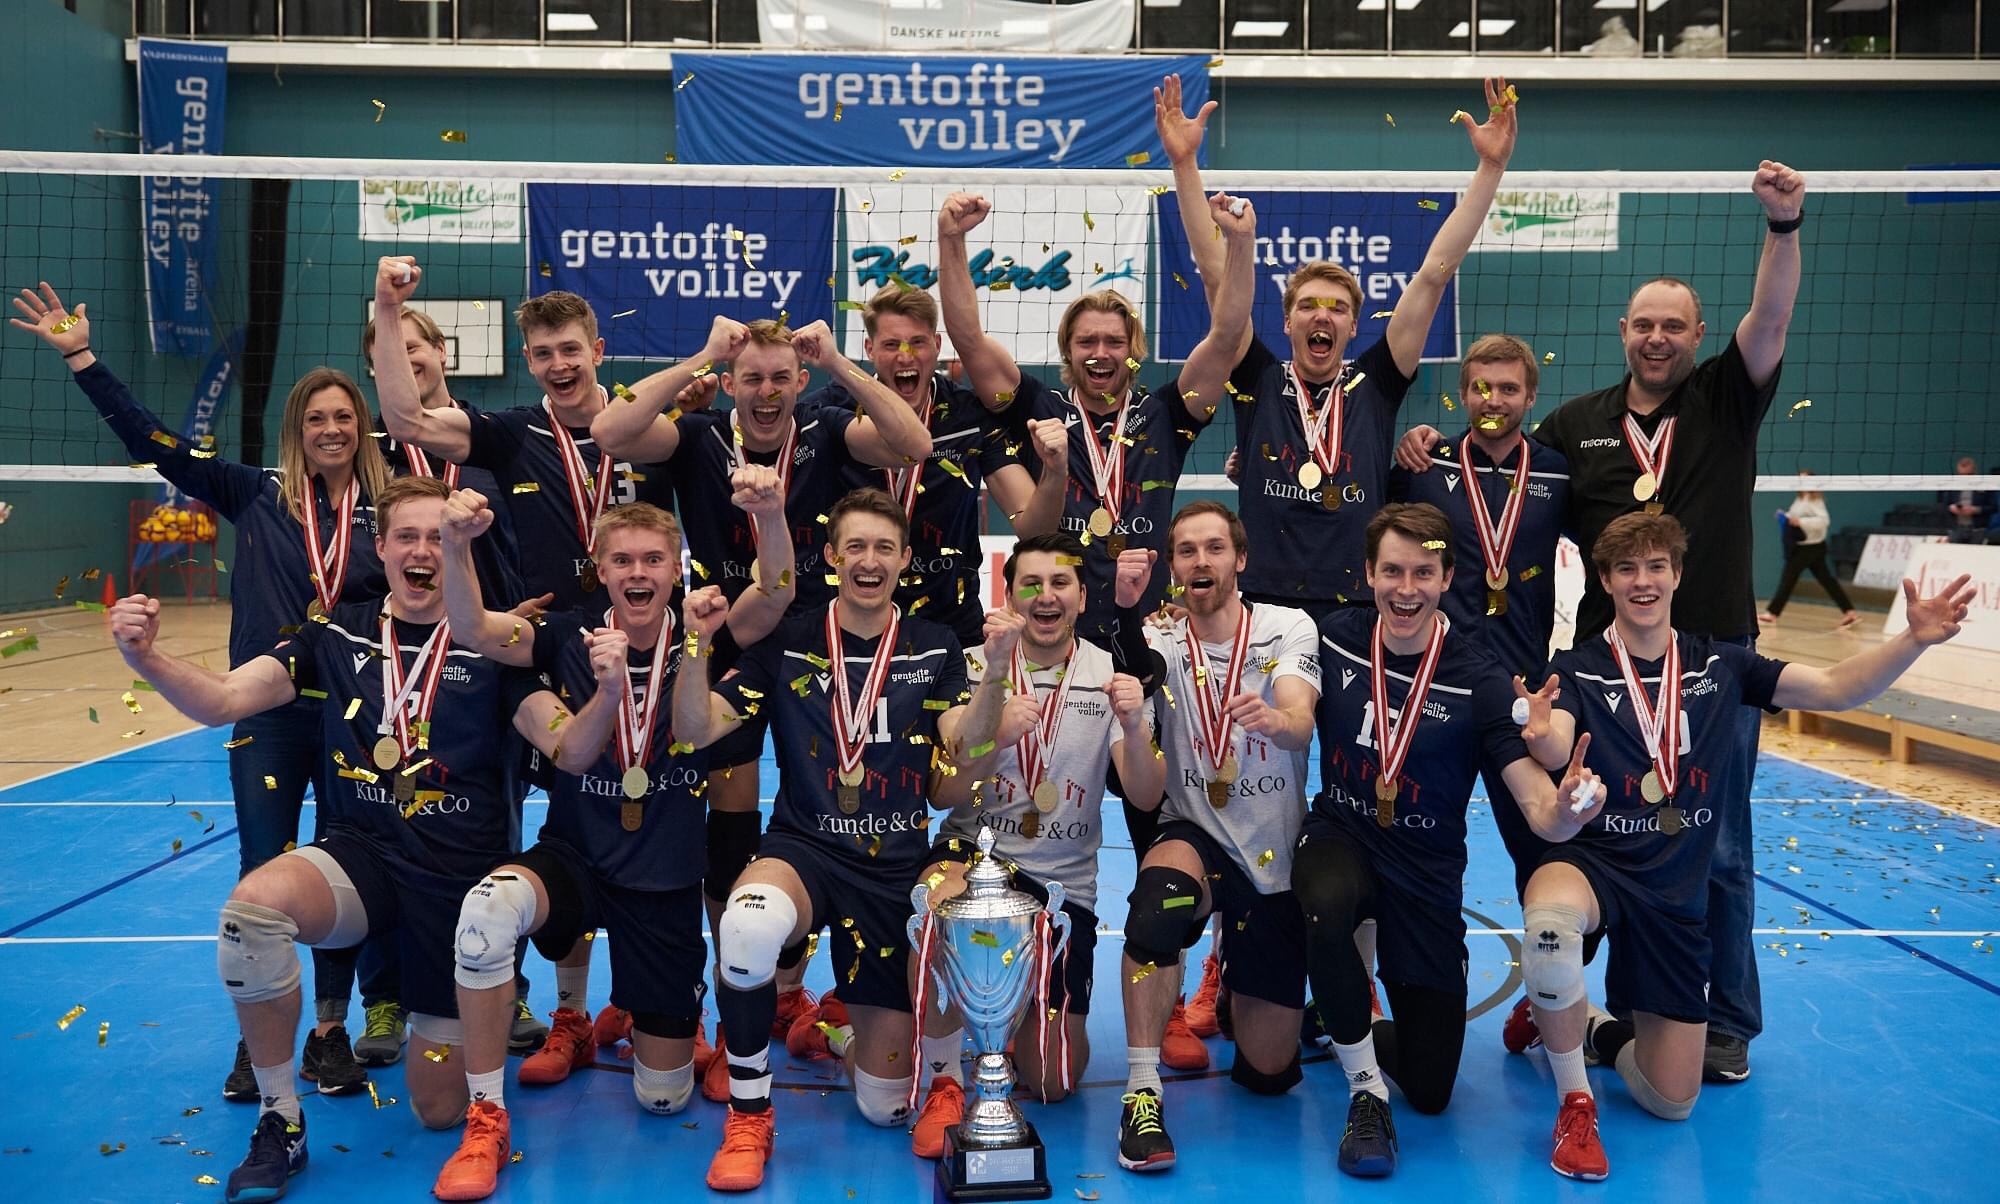 Denmark: Gentofte complete decade of championship finals by winning 4th title in row